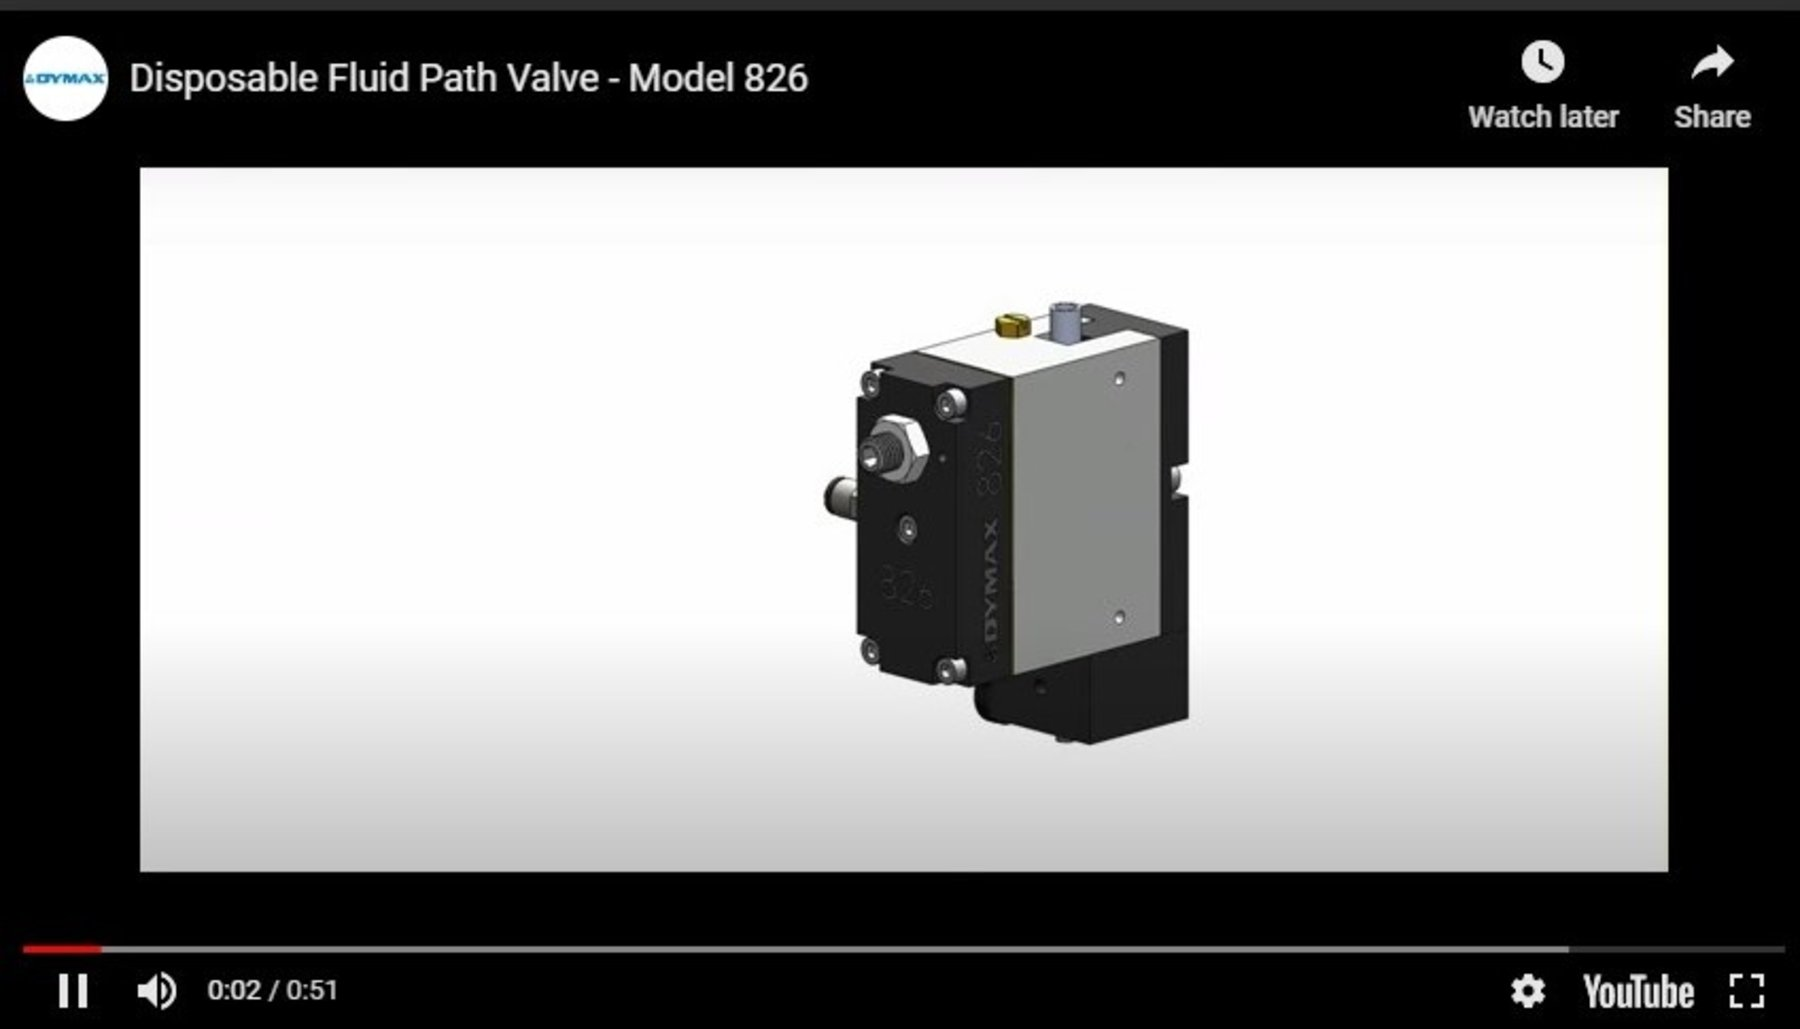 Model 826 Disposable Fluid Path Dispense Valve